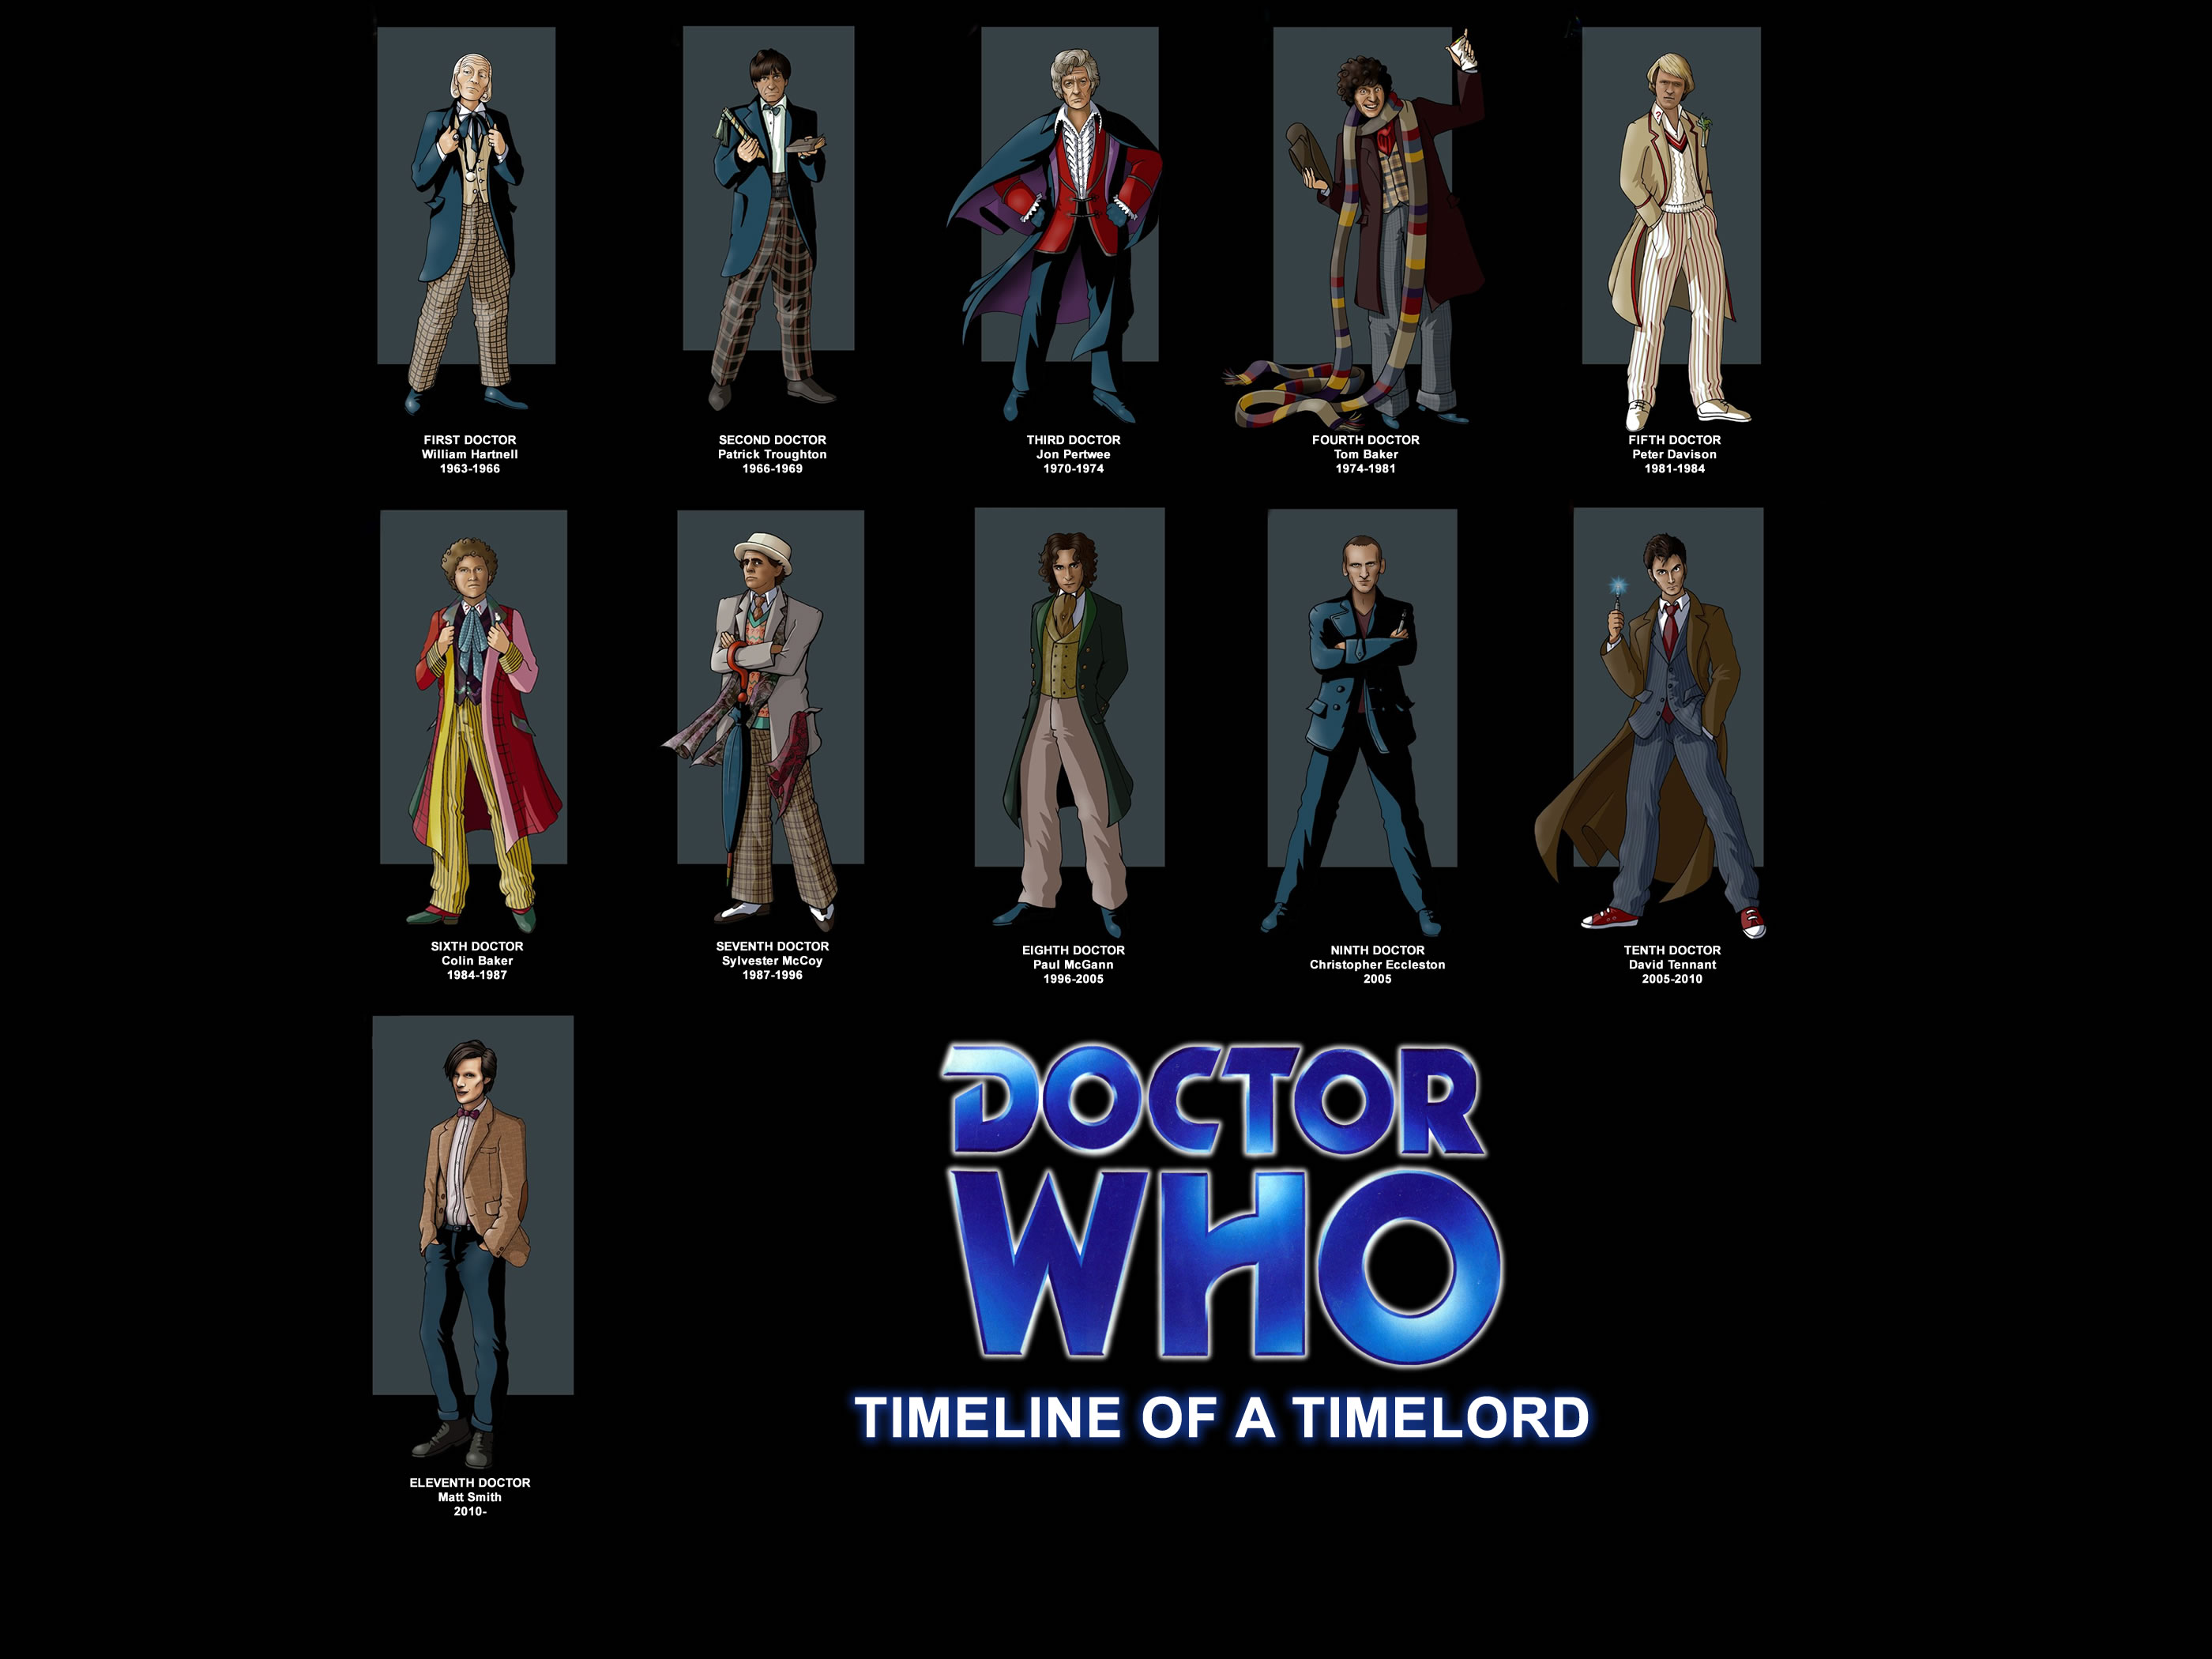 Fourth Doctor Doctors Eleventh Doctor Doctor Who Tenth Doctor